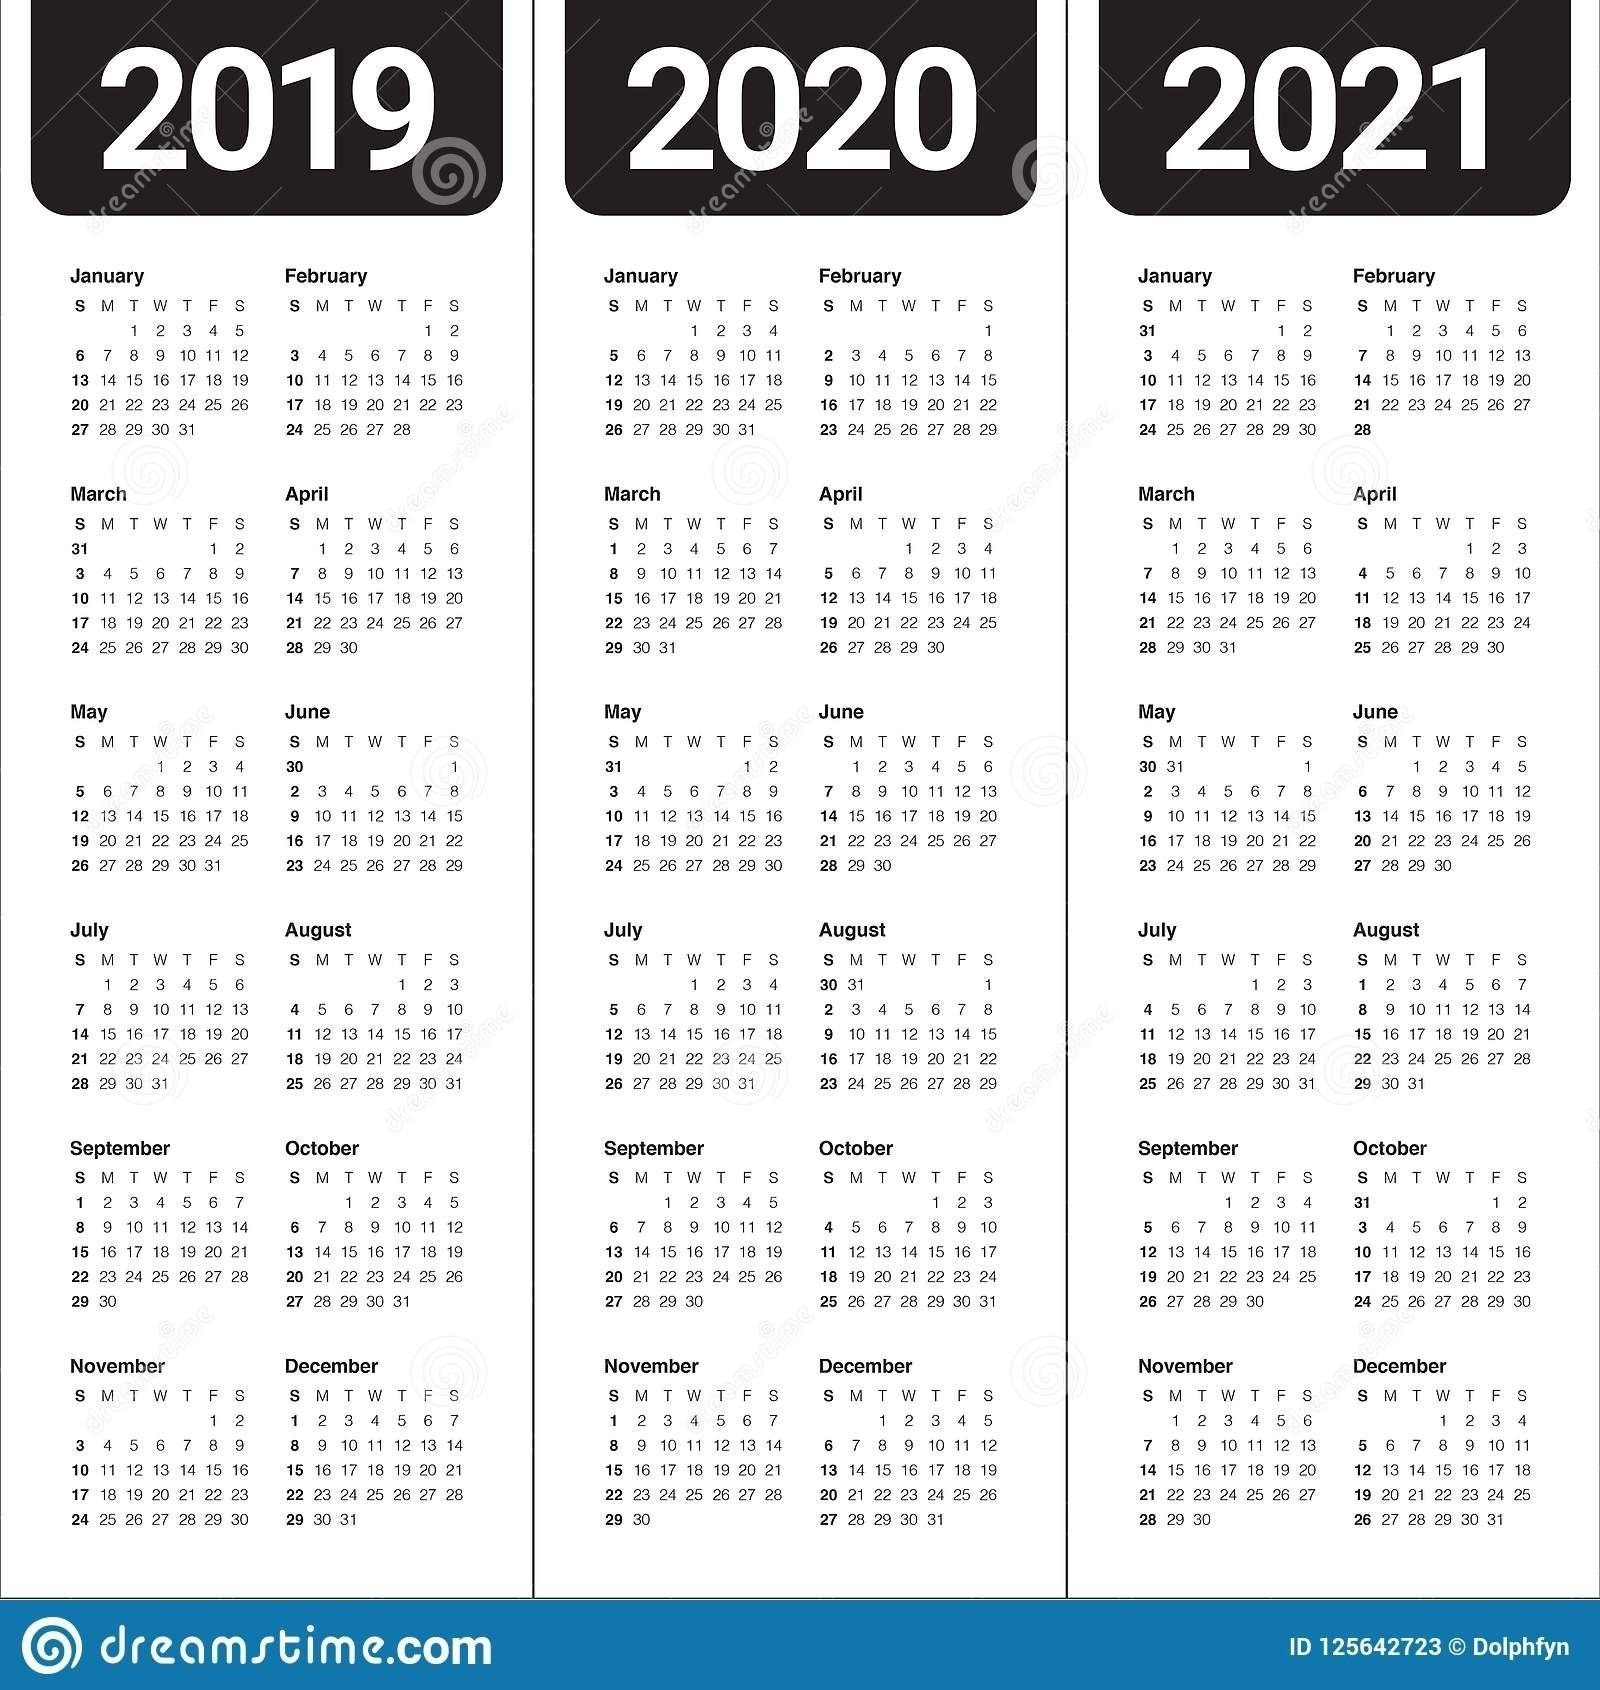 Incredible 2 Year Calendar 2020 And 2021 In 2020 | Calendar  When Is Next Depoprovera Injection Due After April 1, 2021